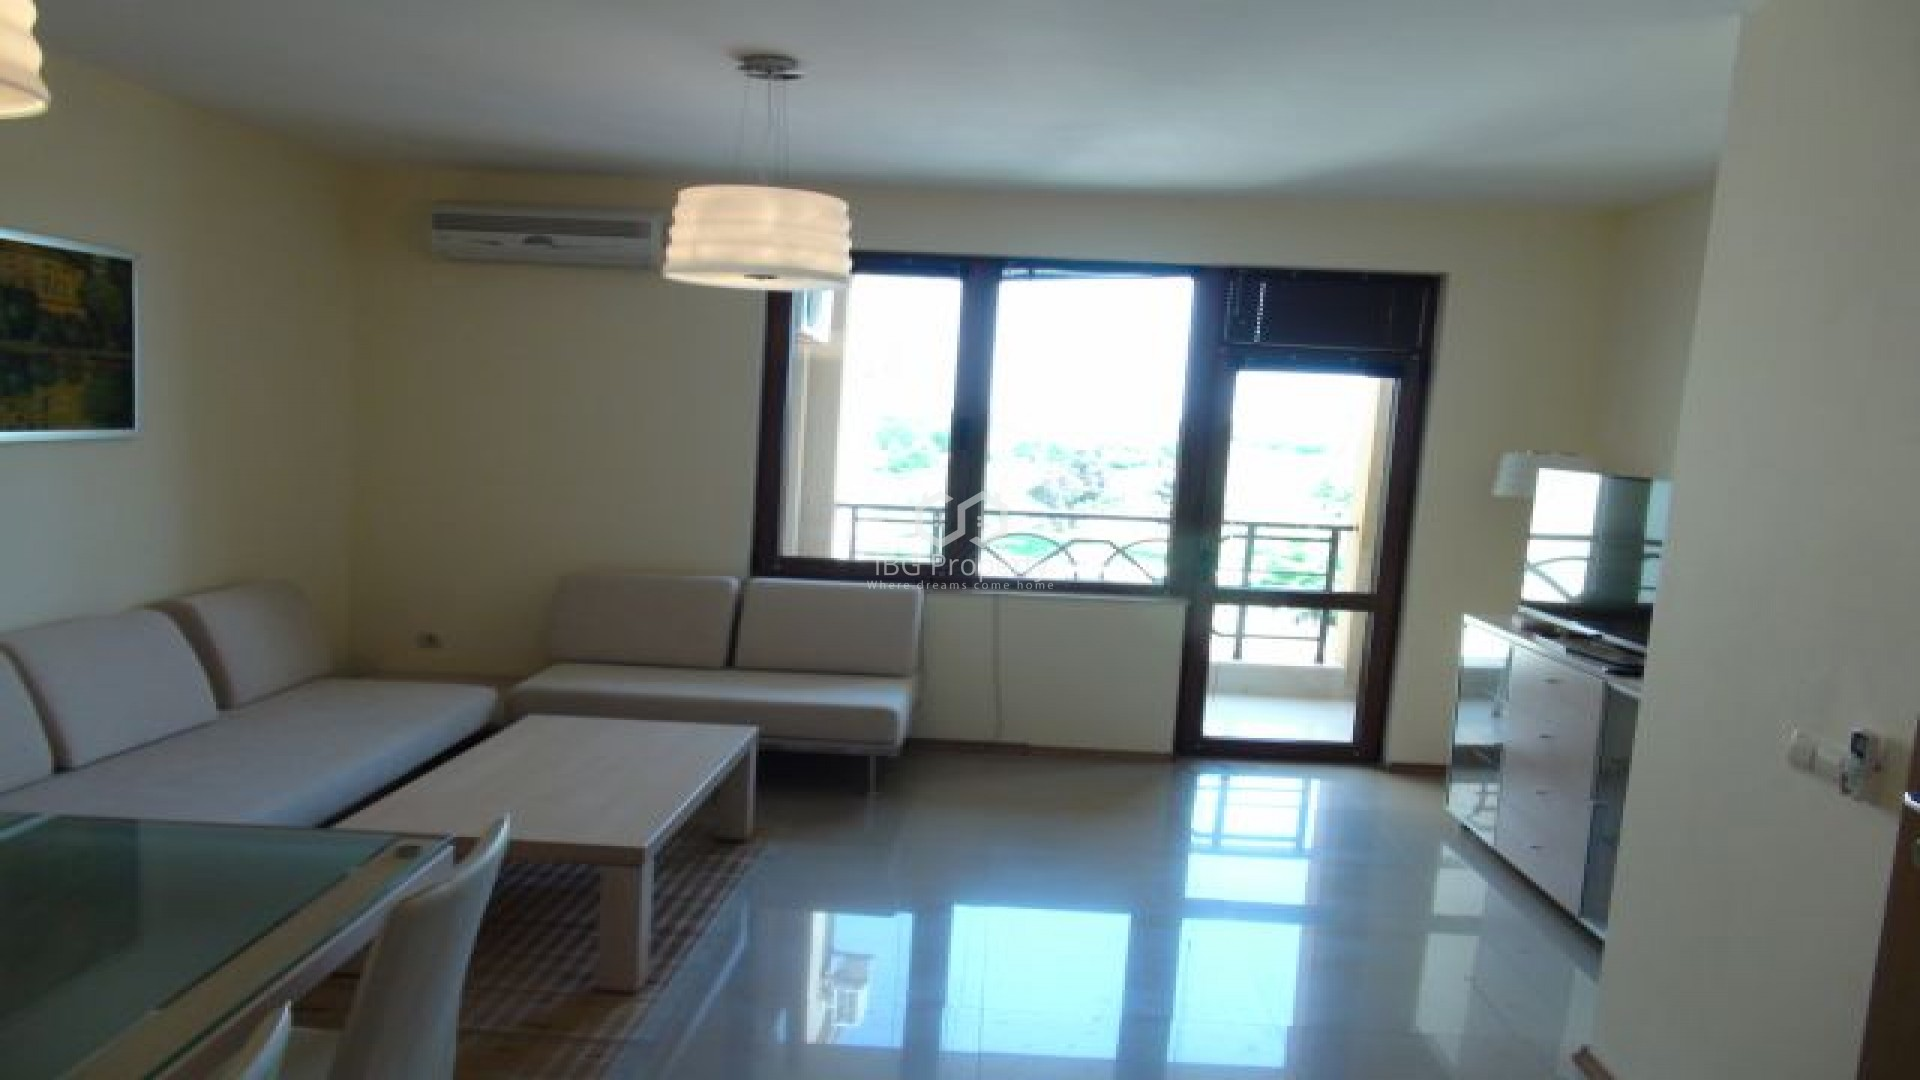 One bedroom apartment Balchik 67 m2